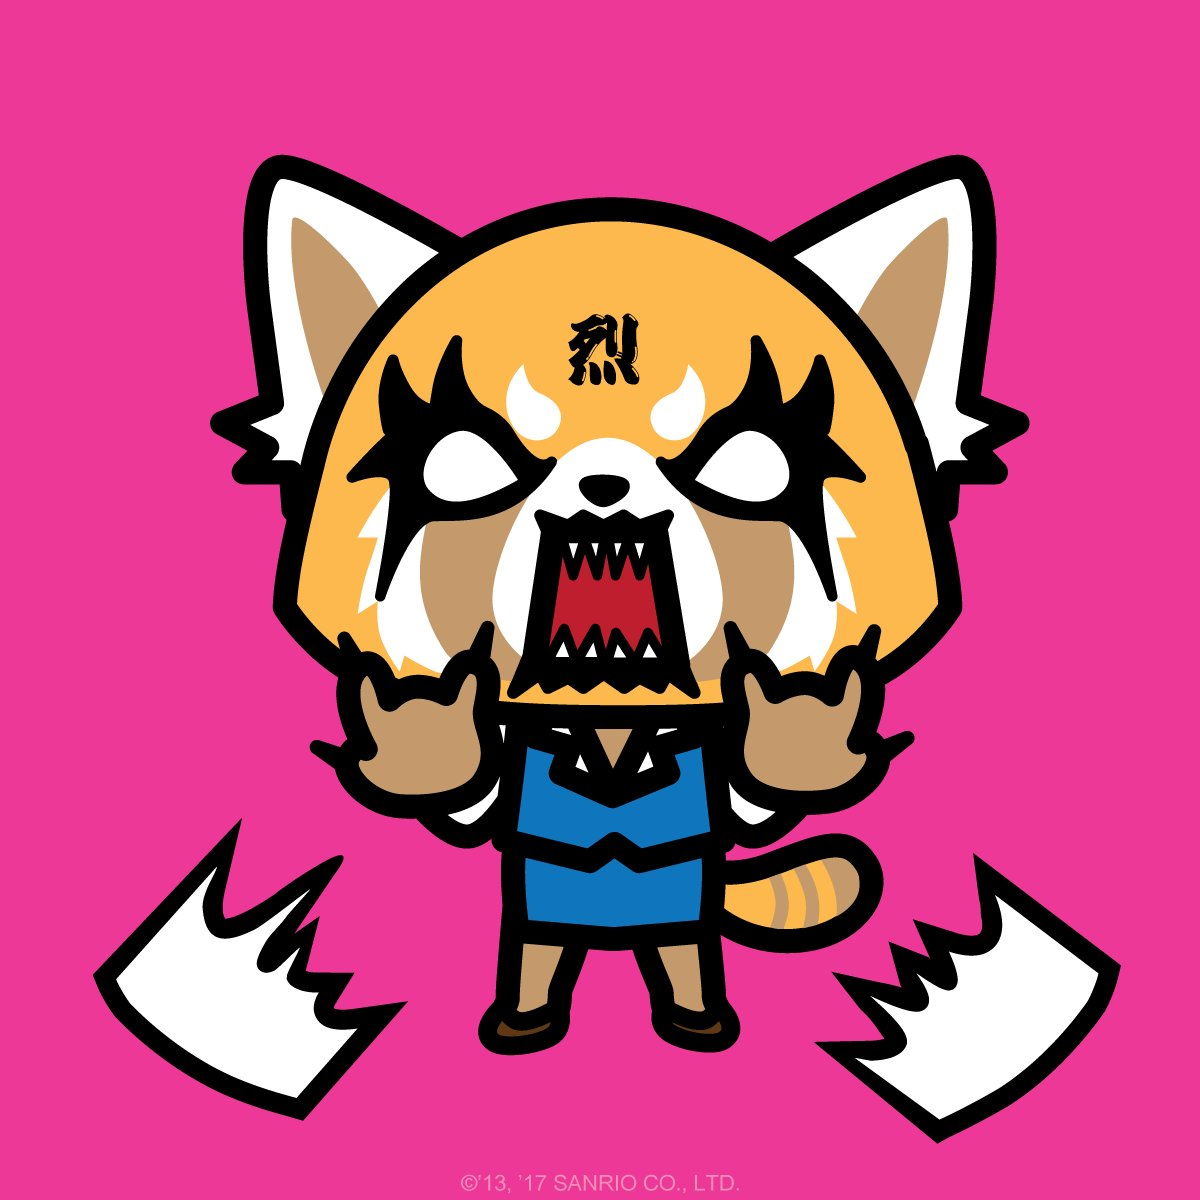 Wall Stickers Office Meet Sanrio S Newest Character Aggretsuko A Red Panda